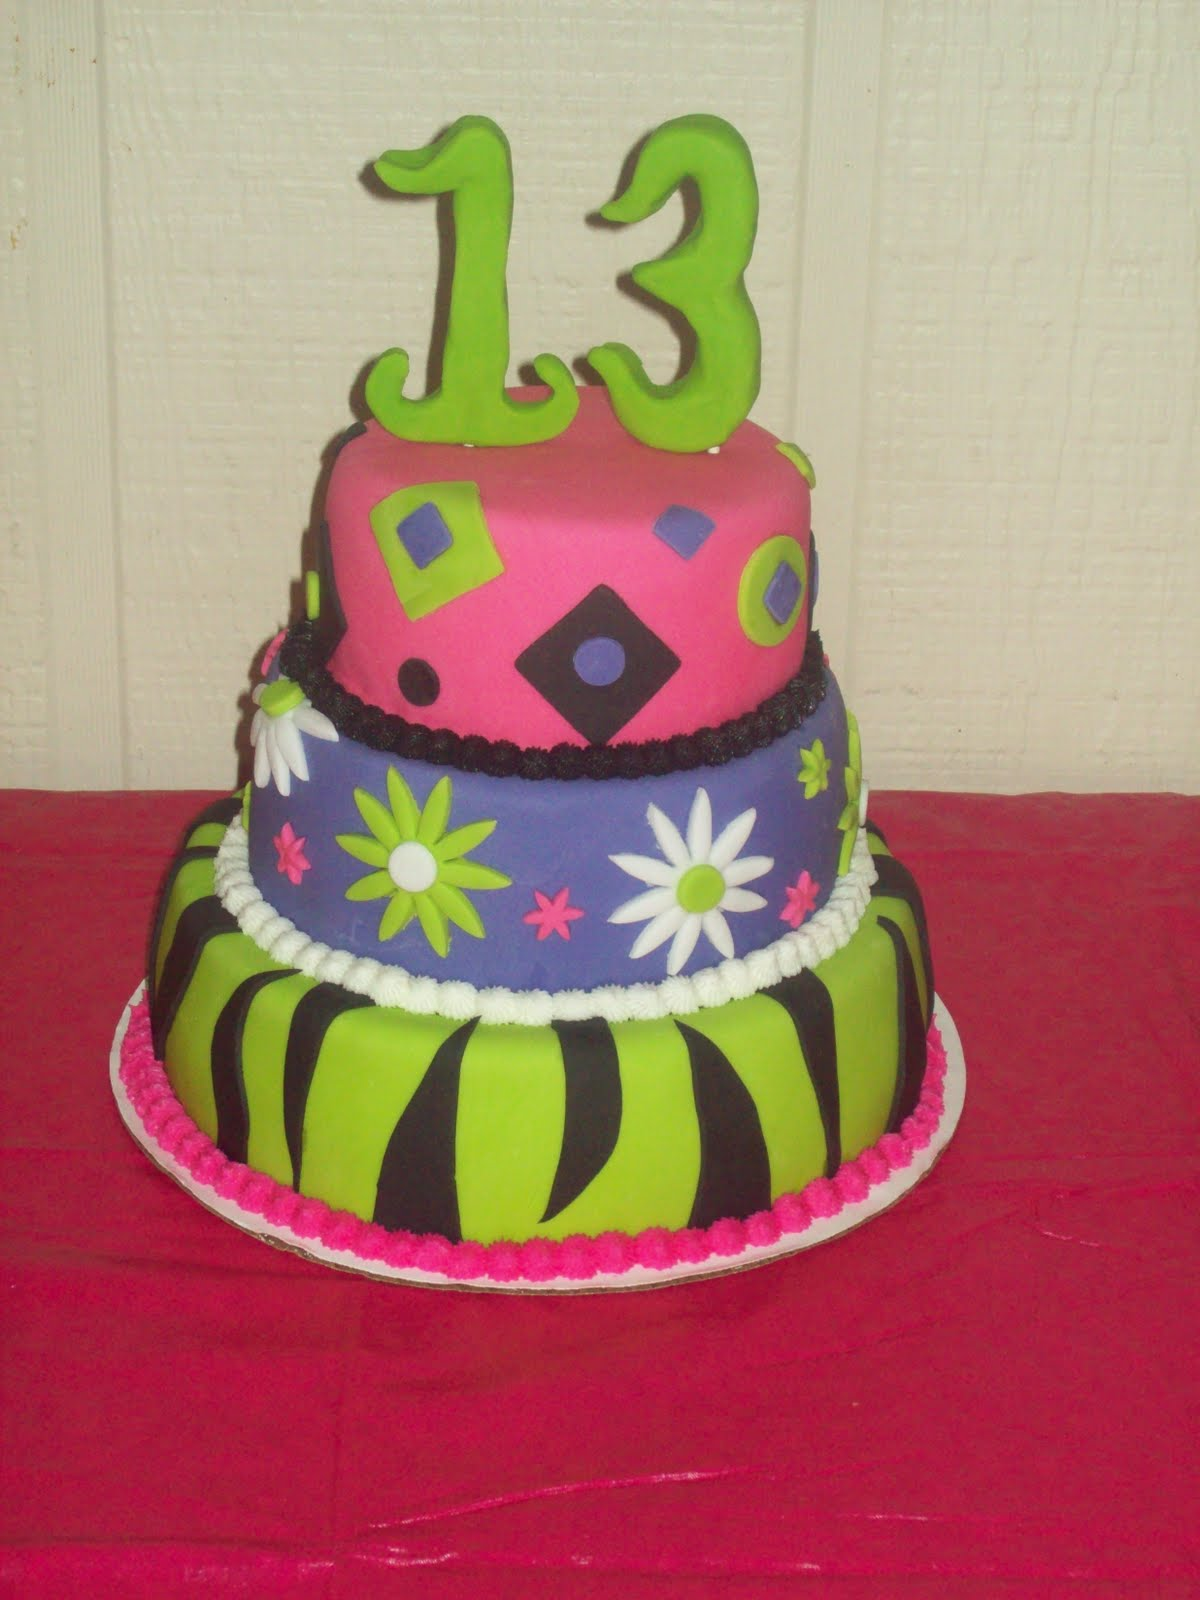 Cake Ideas For A 13th Birthday Party : Pin 13th Birthday Party Ideas For Girls Best Cake on Pinterest